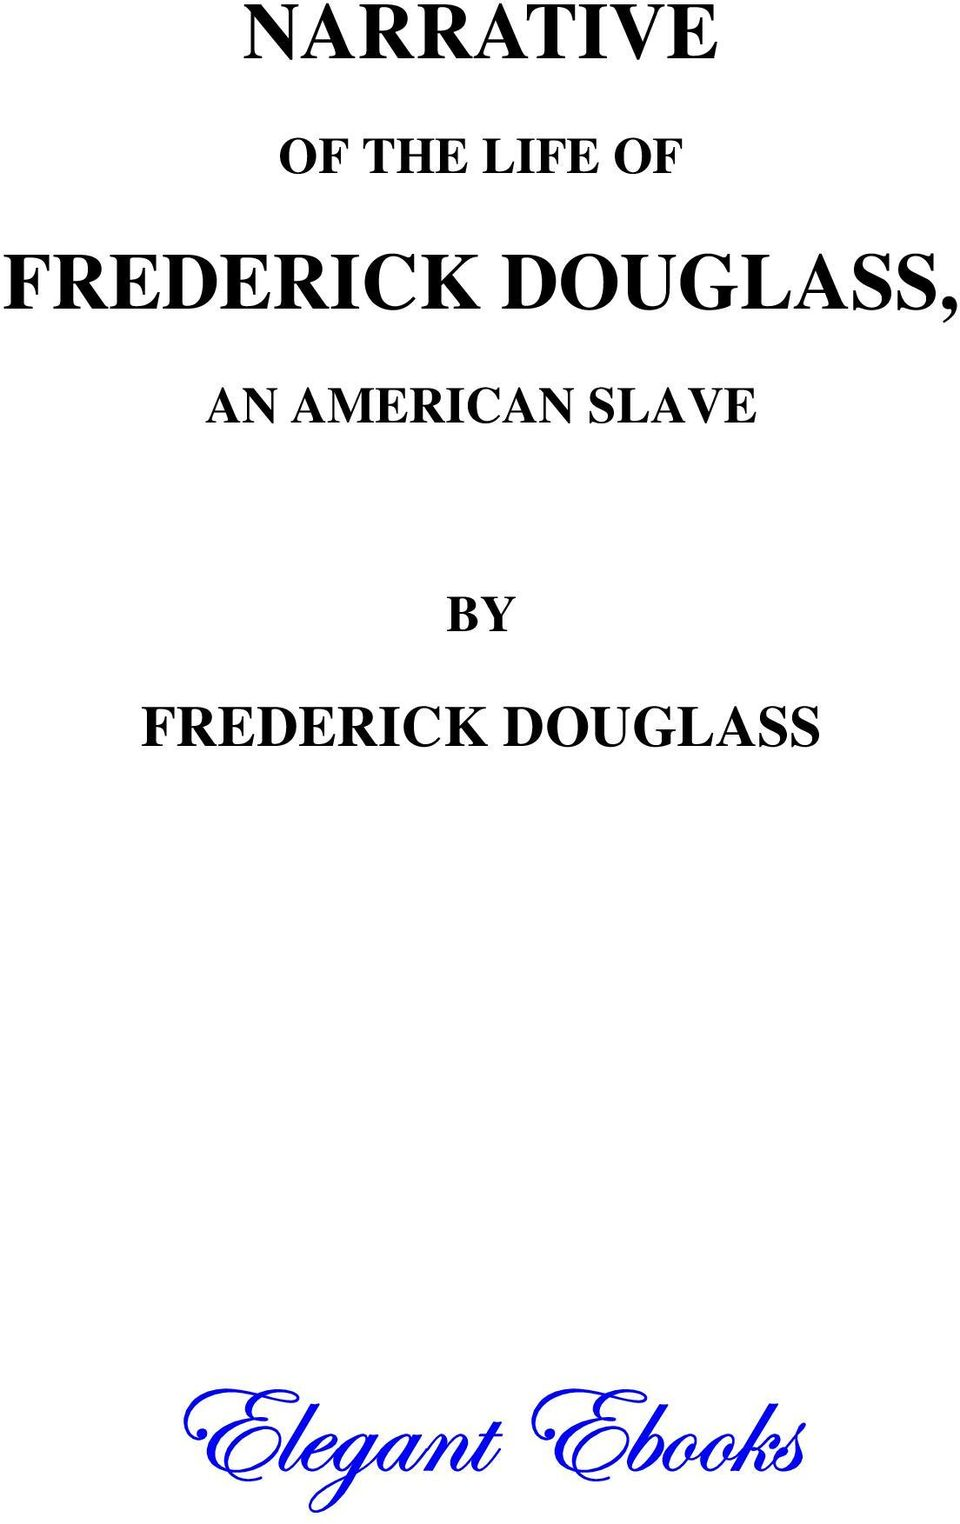 AMERICAN SLAVE BY